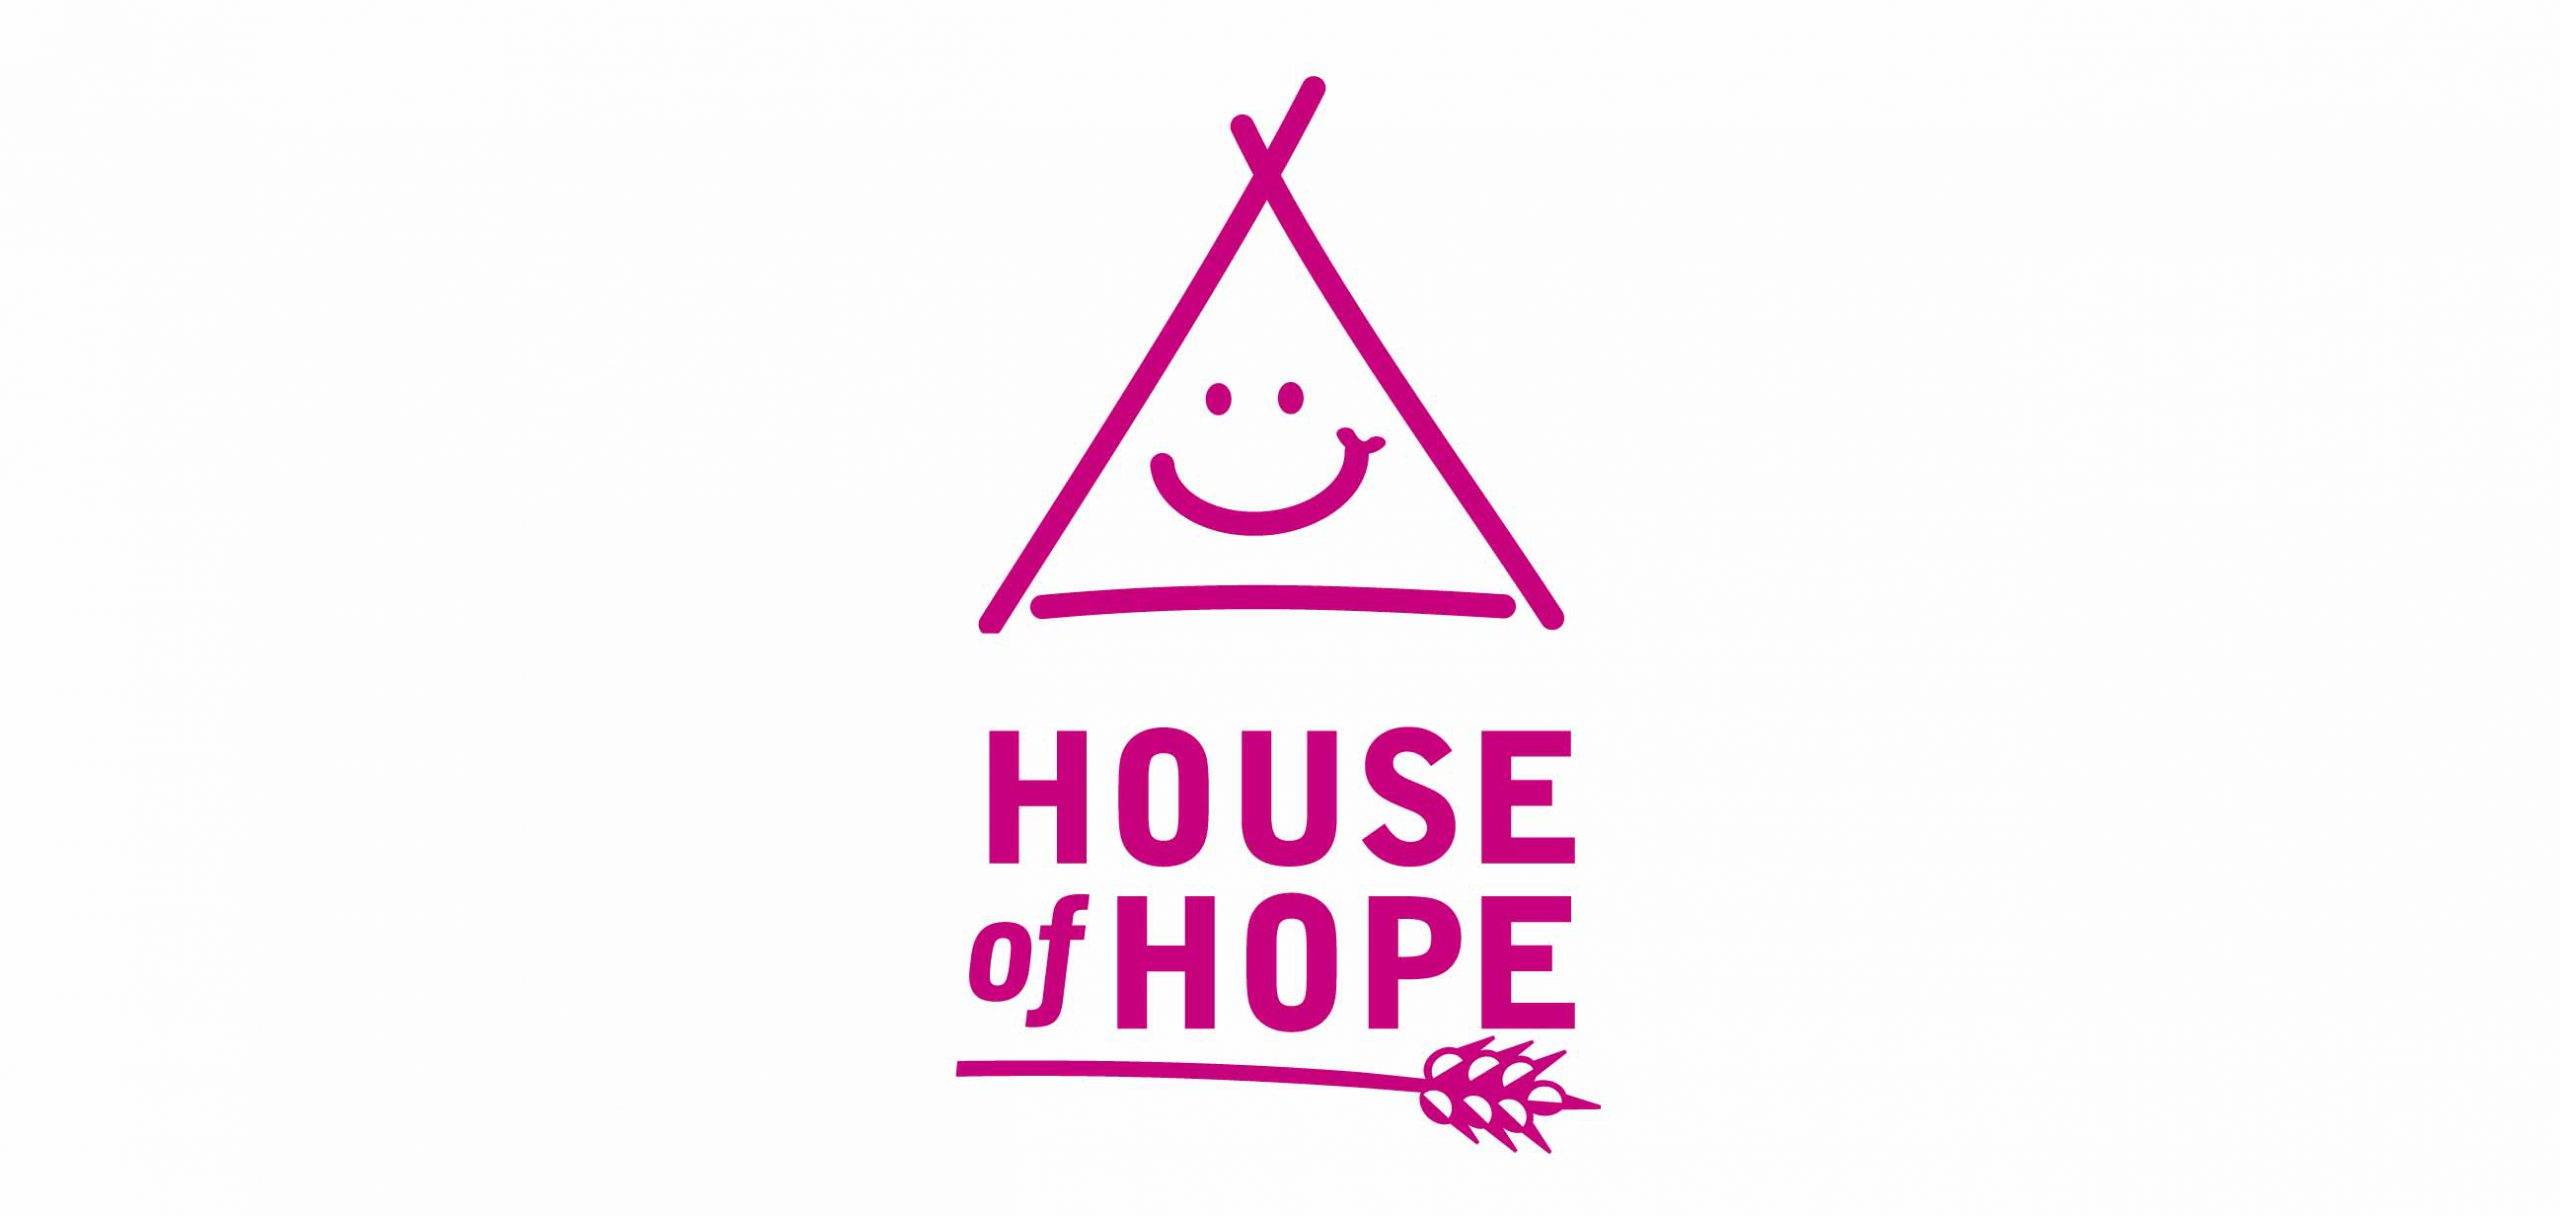 Stichting House of Hope